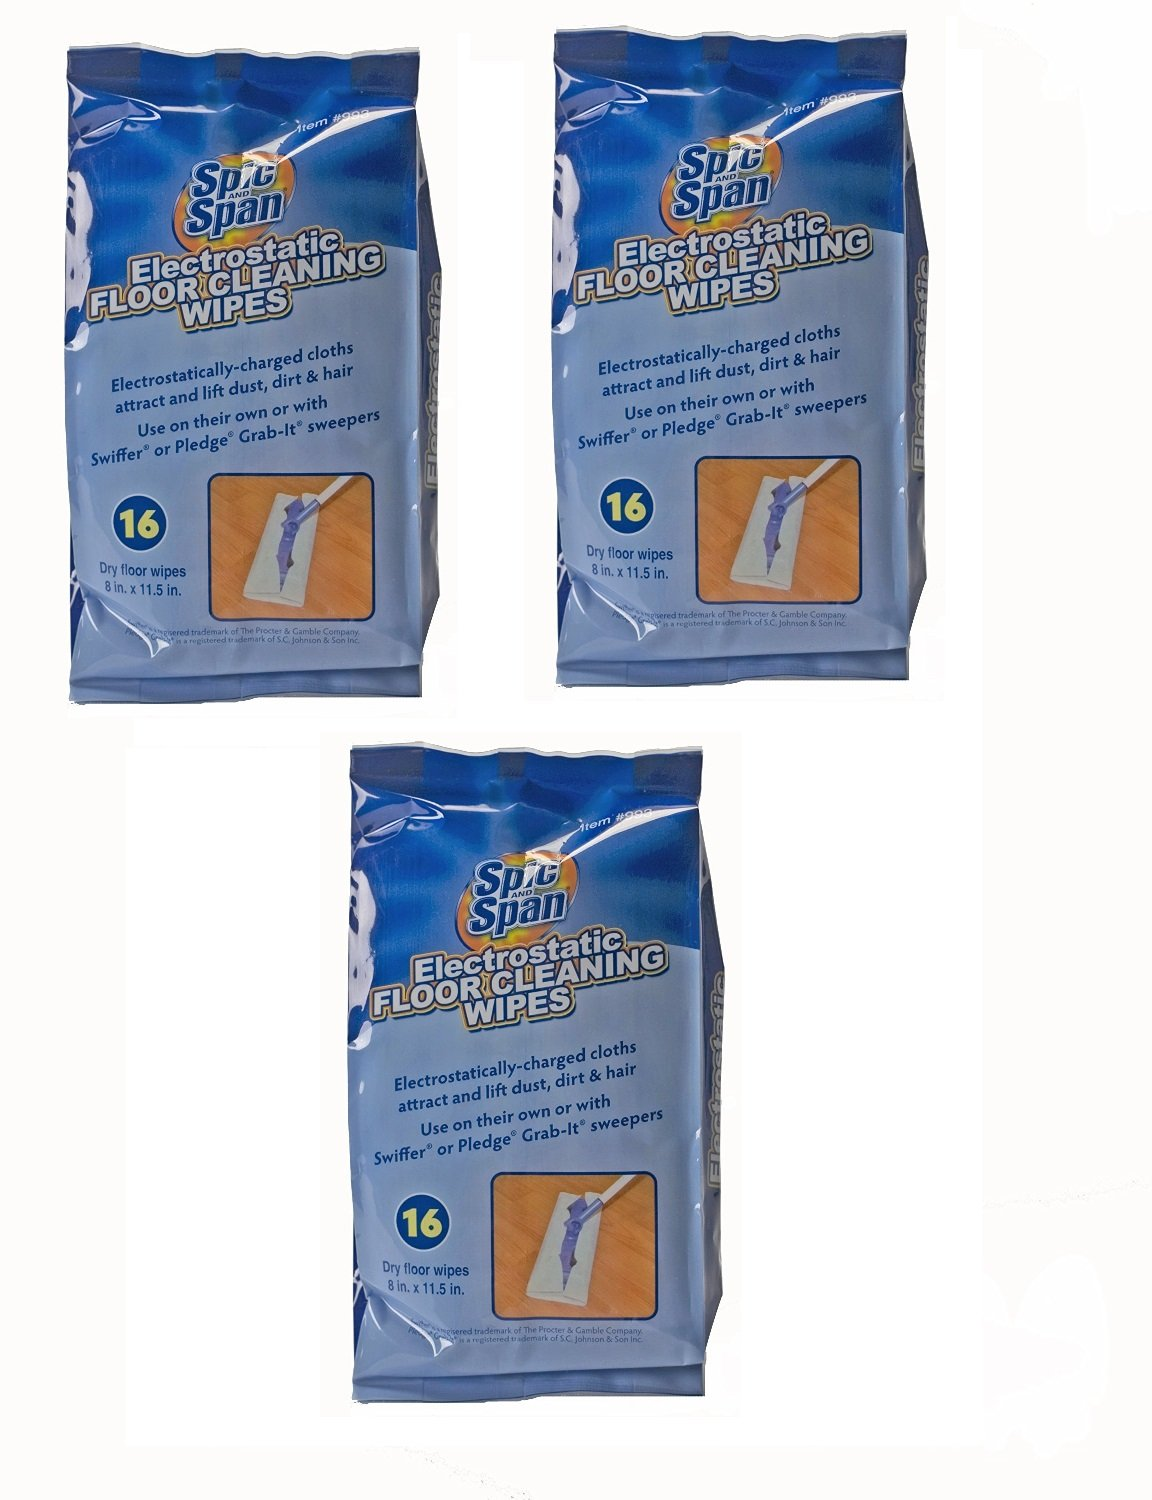 3 pack (48) Spic and Span Kleen Maid Electrostatic Dry Floor Wipes